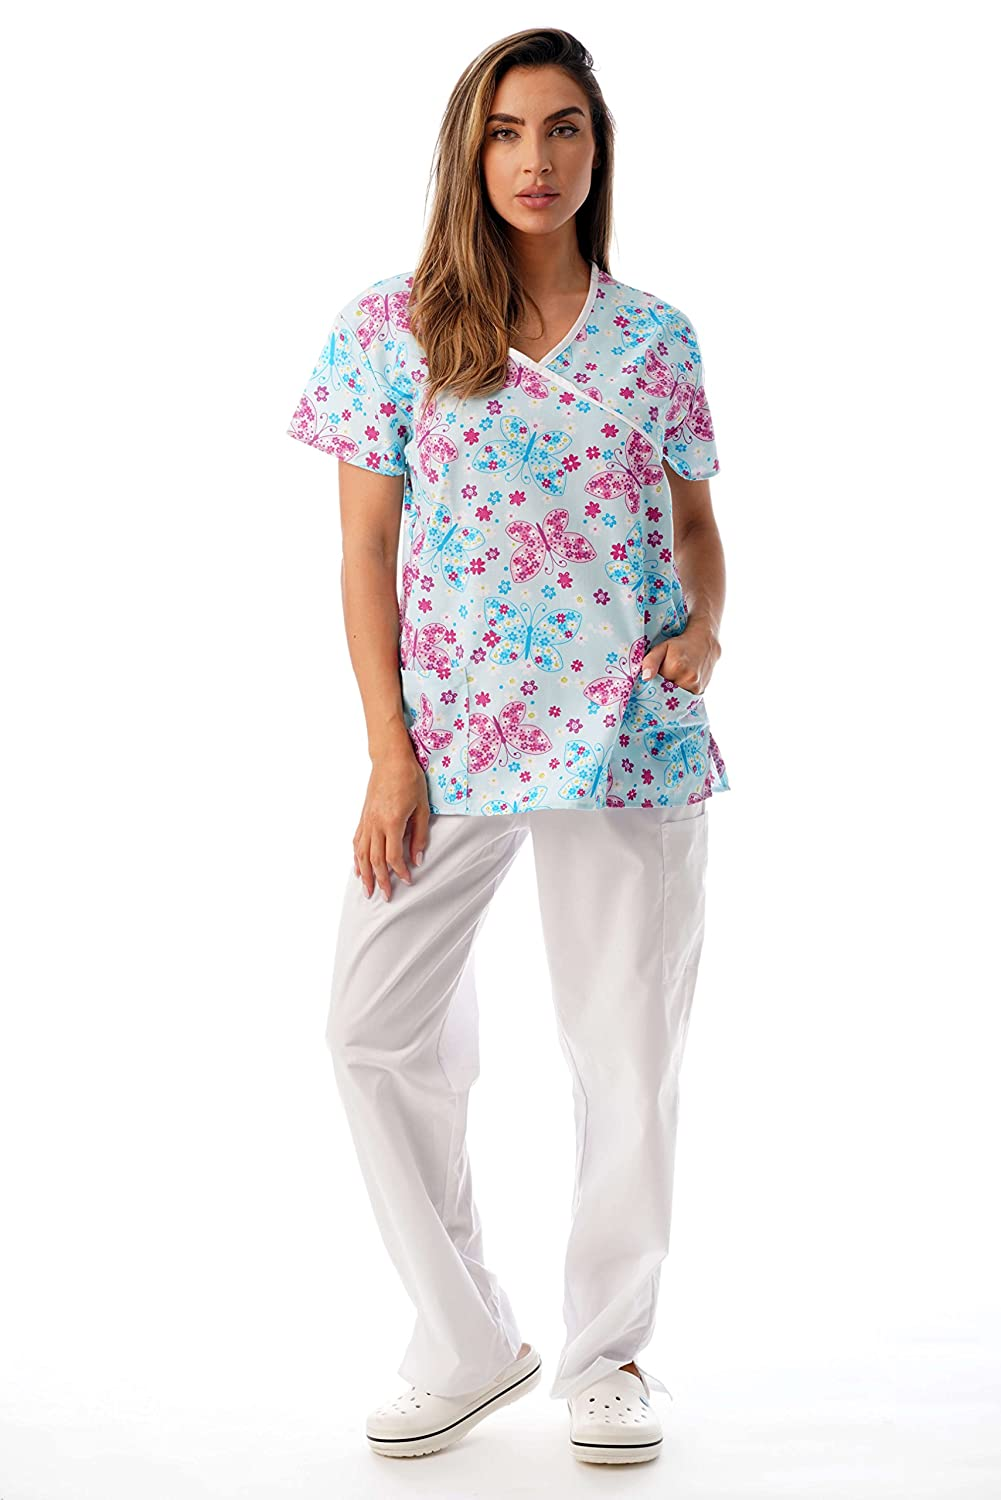 7c0d6fce416 ALL DAY COMFORT: These medical scrubs for women feel soft on the skin, are  comfortably roomy, and are designed with a functional drawstring and  elastic band ...